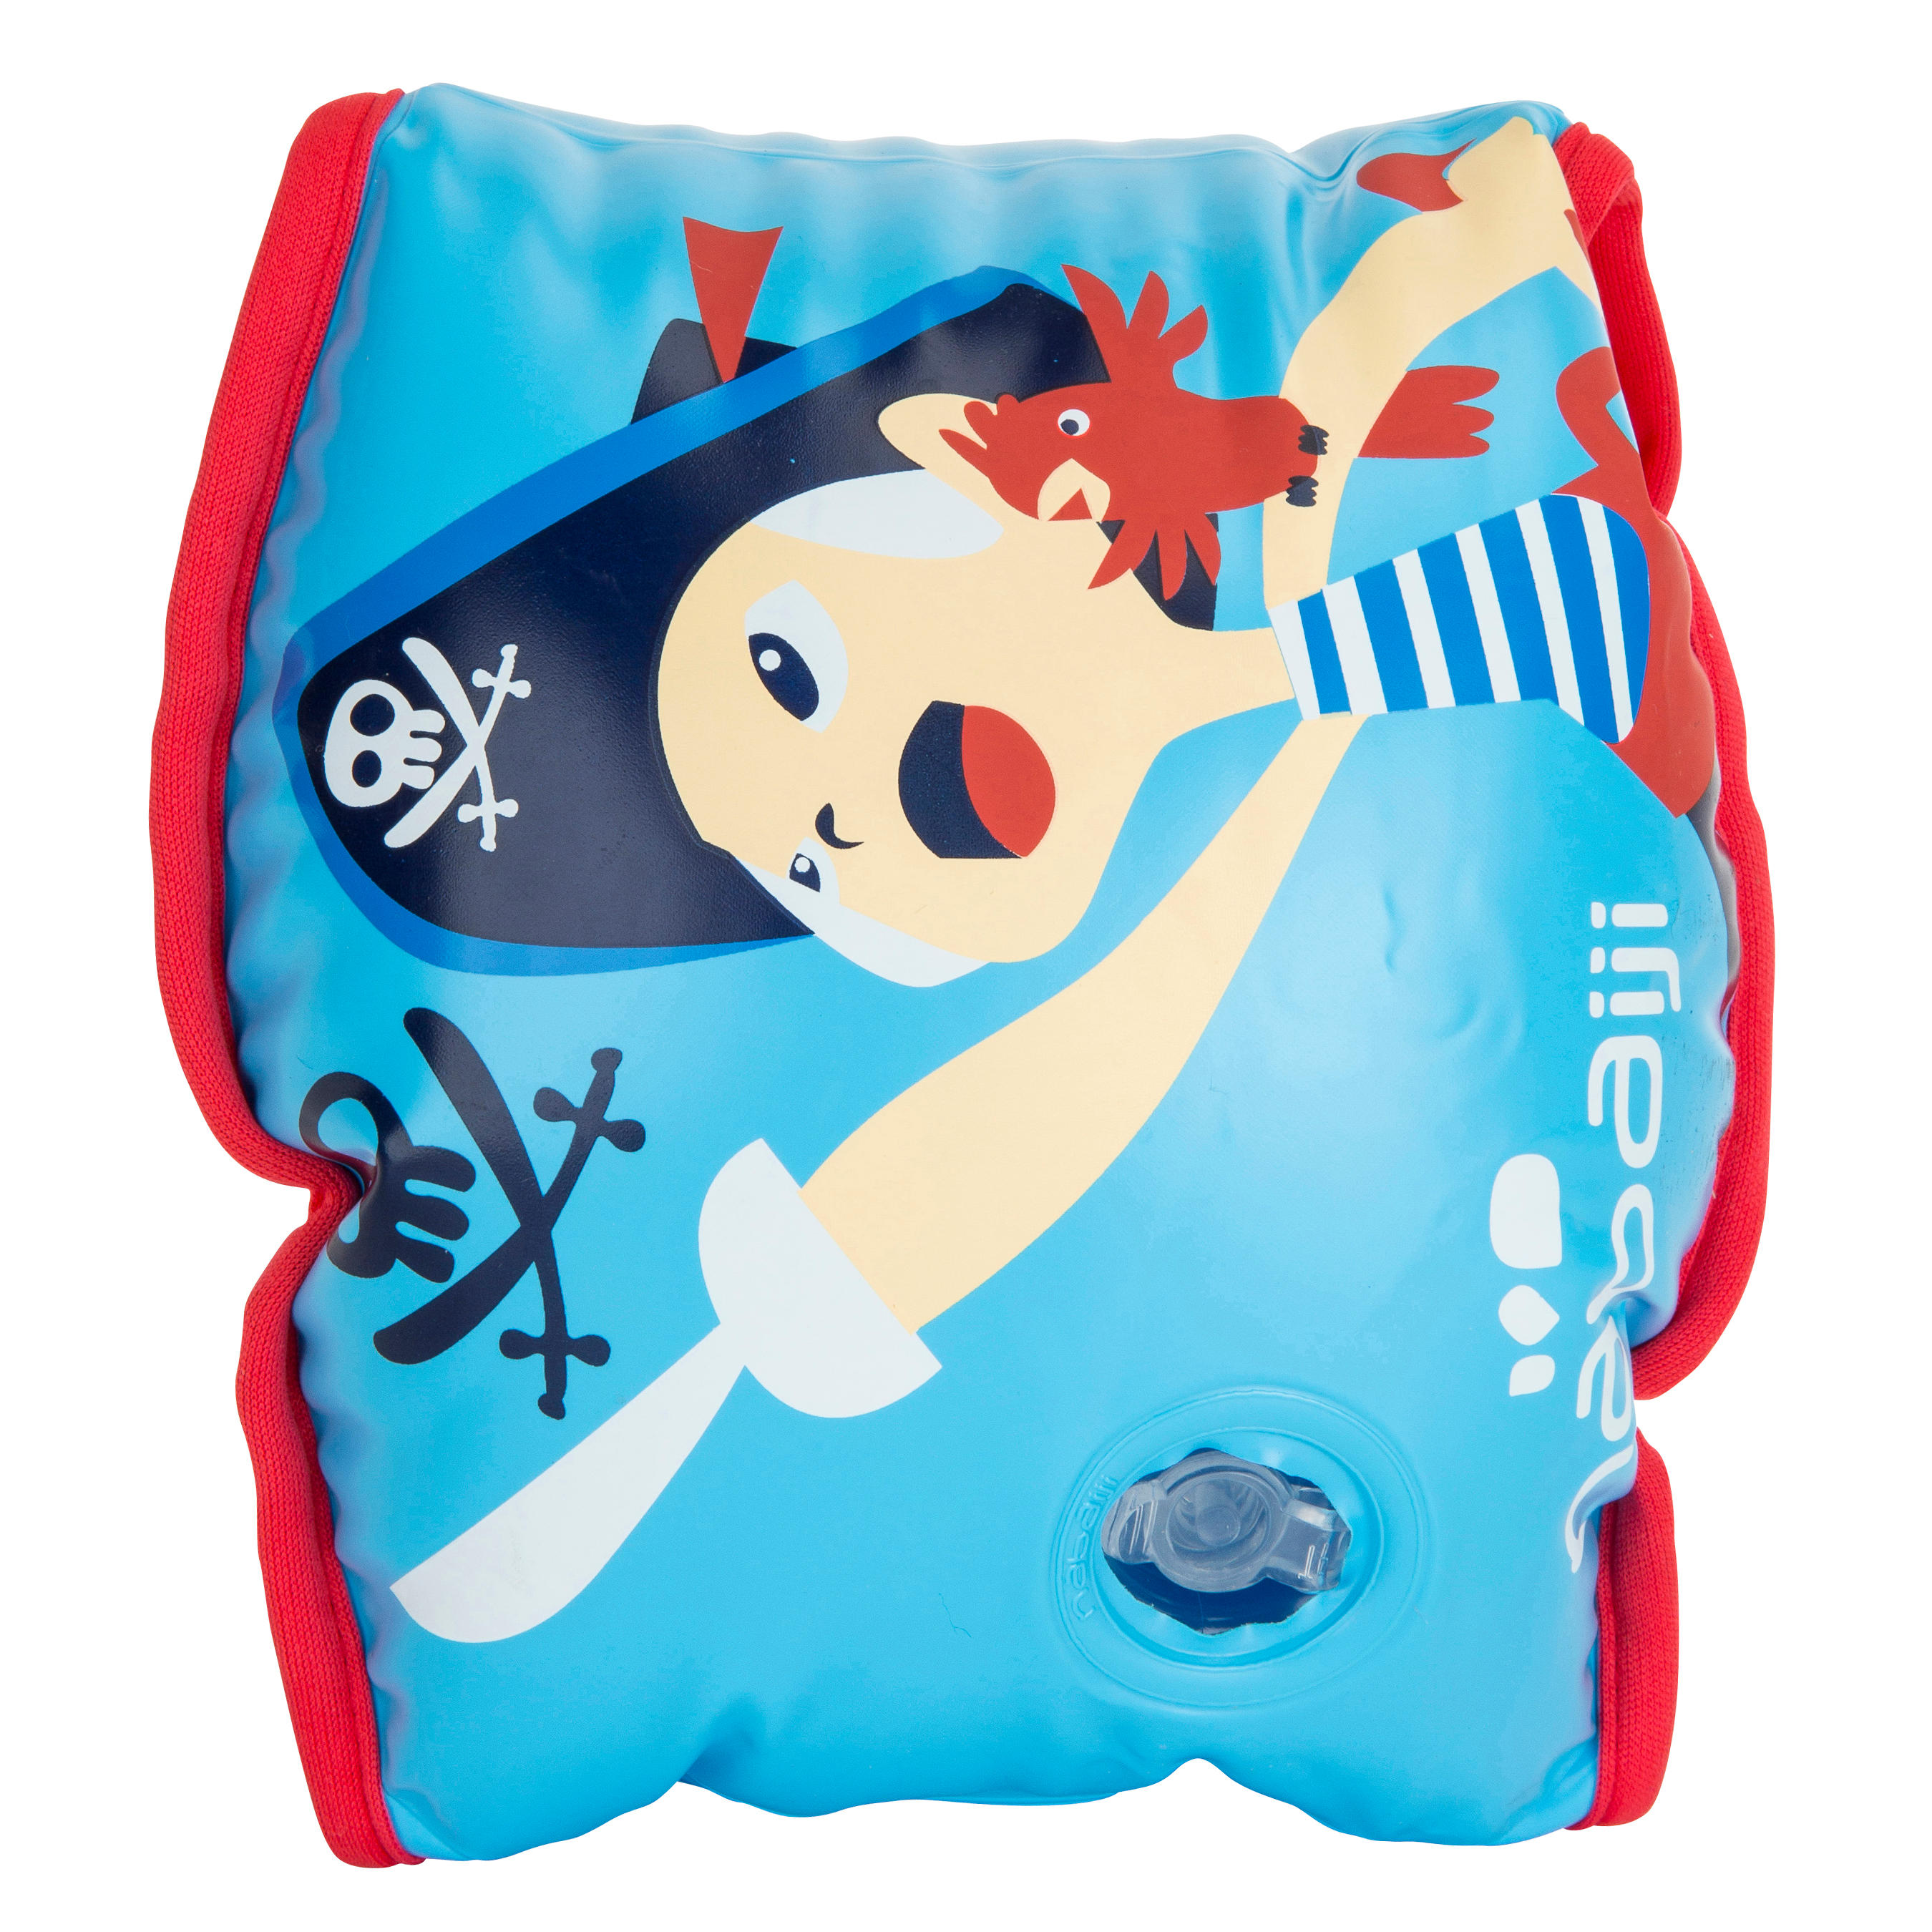 _QUOTE_Soft_QUOTE_ Inner Fabric Swimming Armbands - Pirate Print Blue